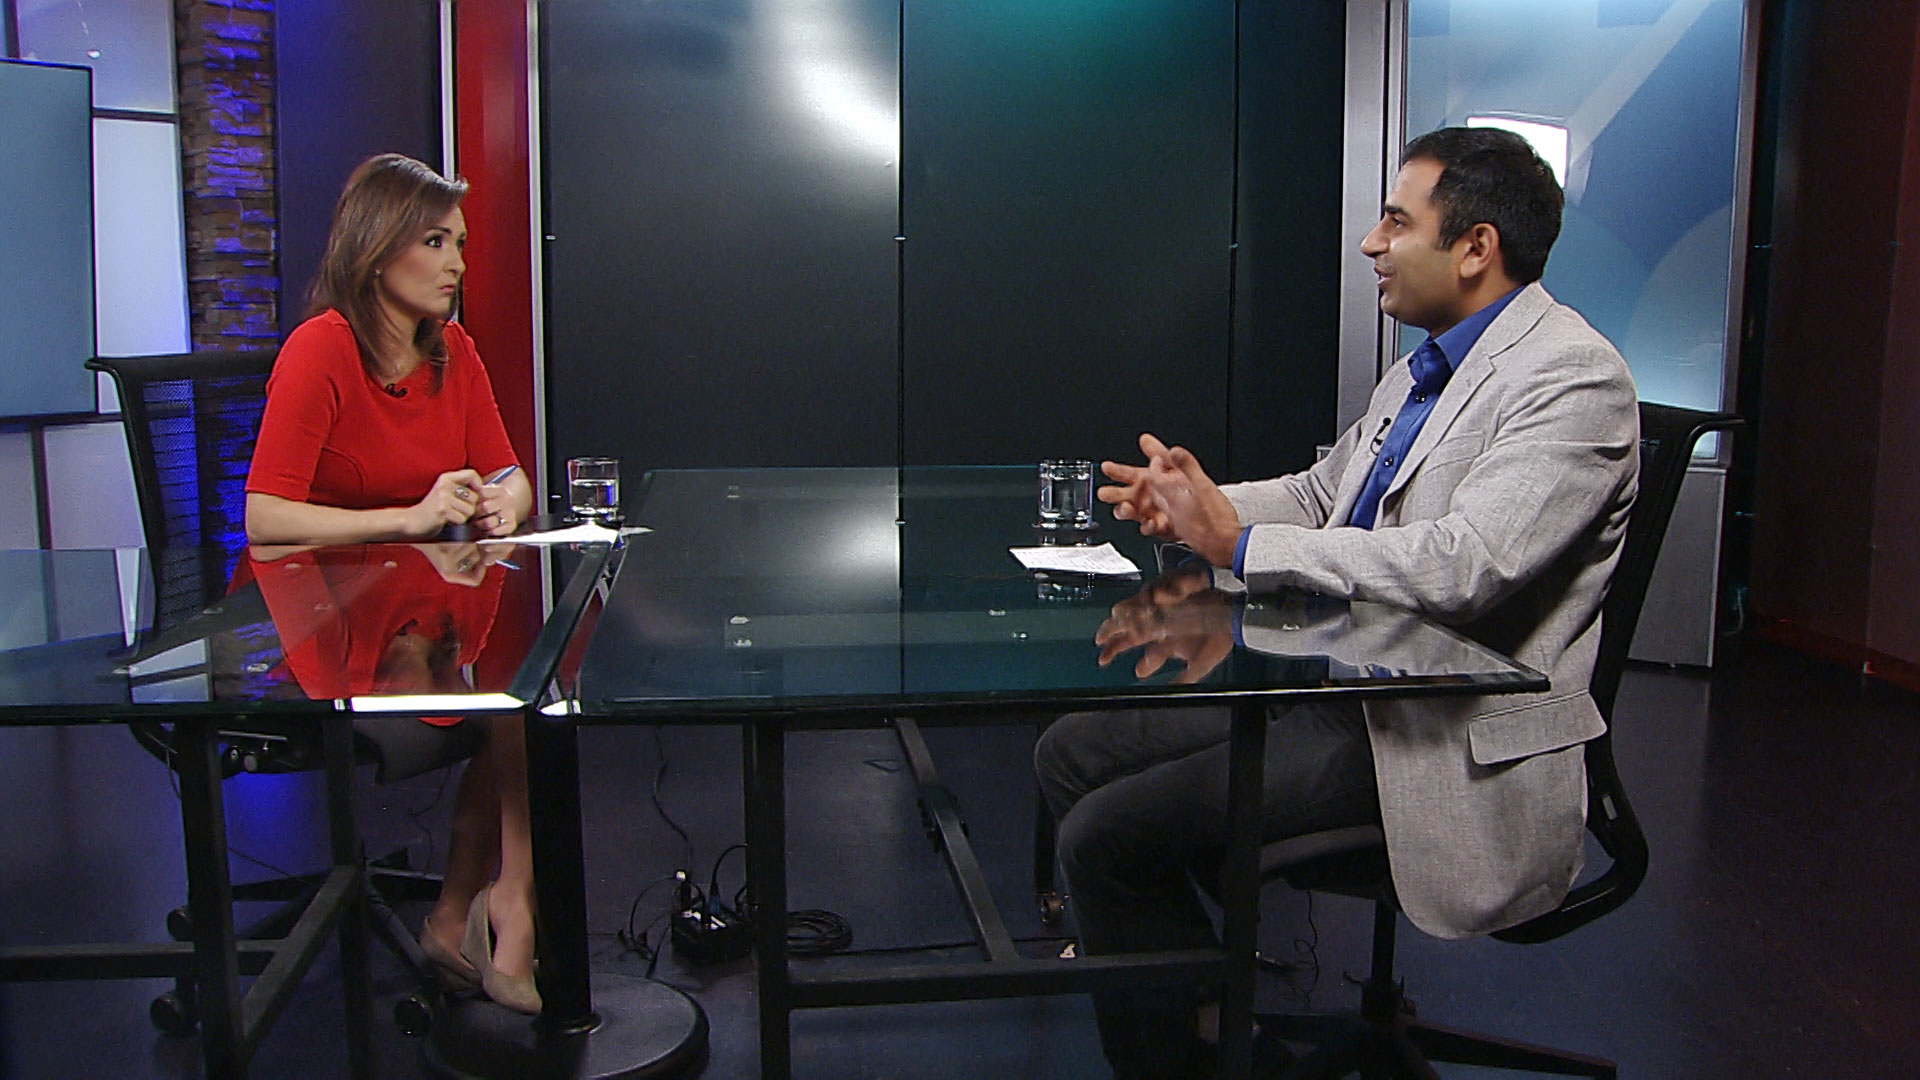 Ravi Tandon, an assistant professor in the University of Arizona College of Engineering, sits for an interview with Arizona 360 host Lorraine Rivera at Arizona Public Media.